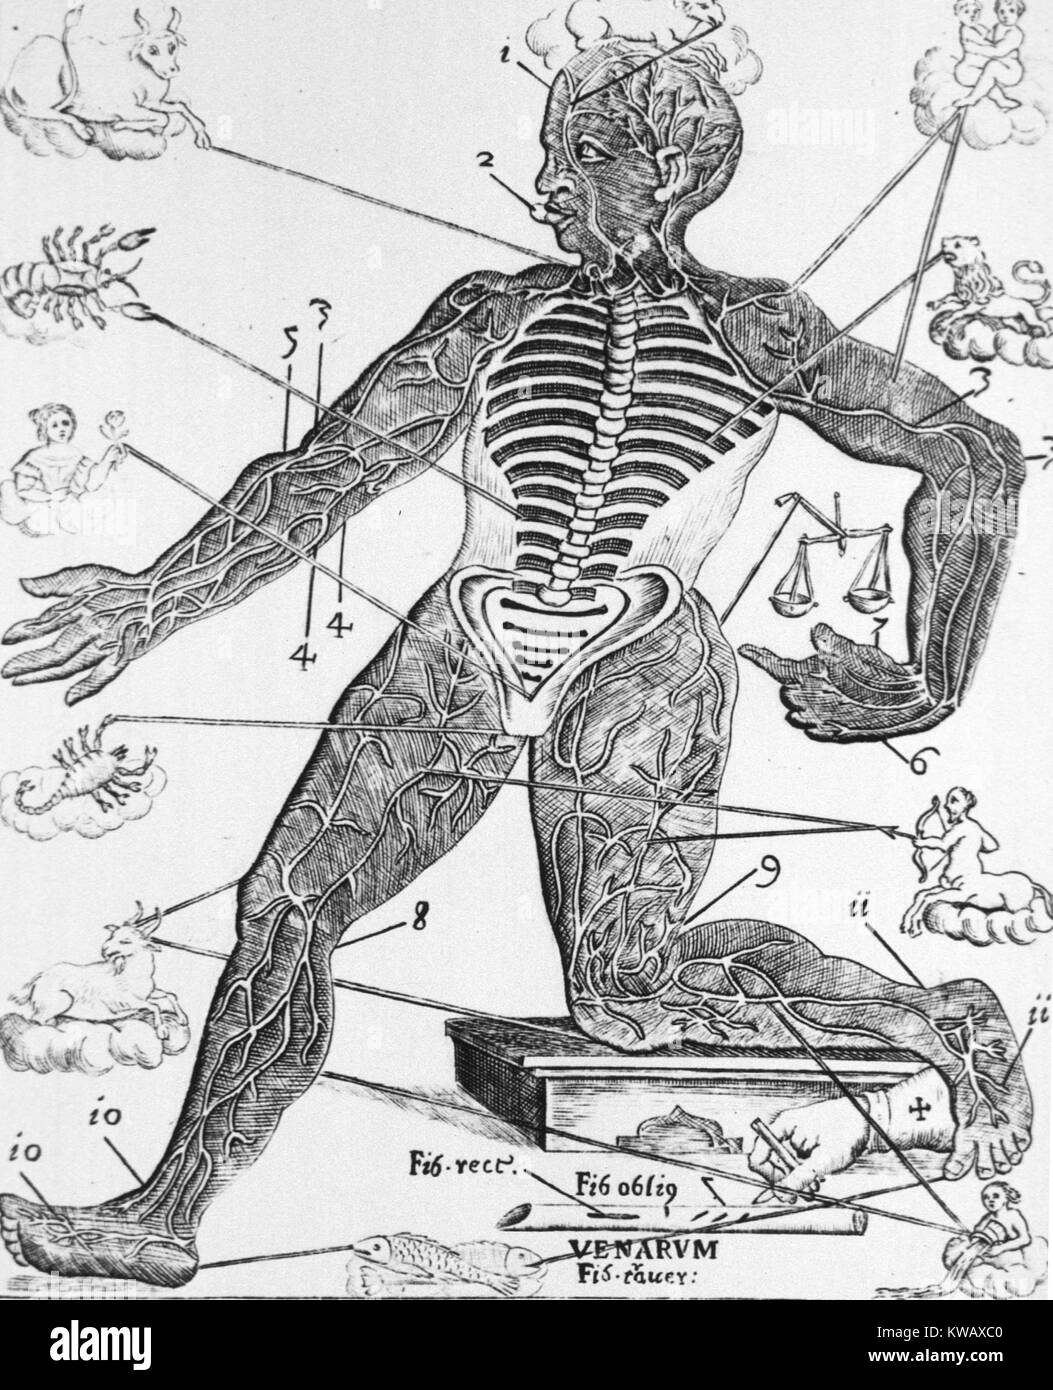 Human figure with the spines and the ribs exposed, also showing the major arteries and veins of the extremities - Stock Image